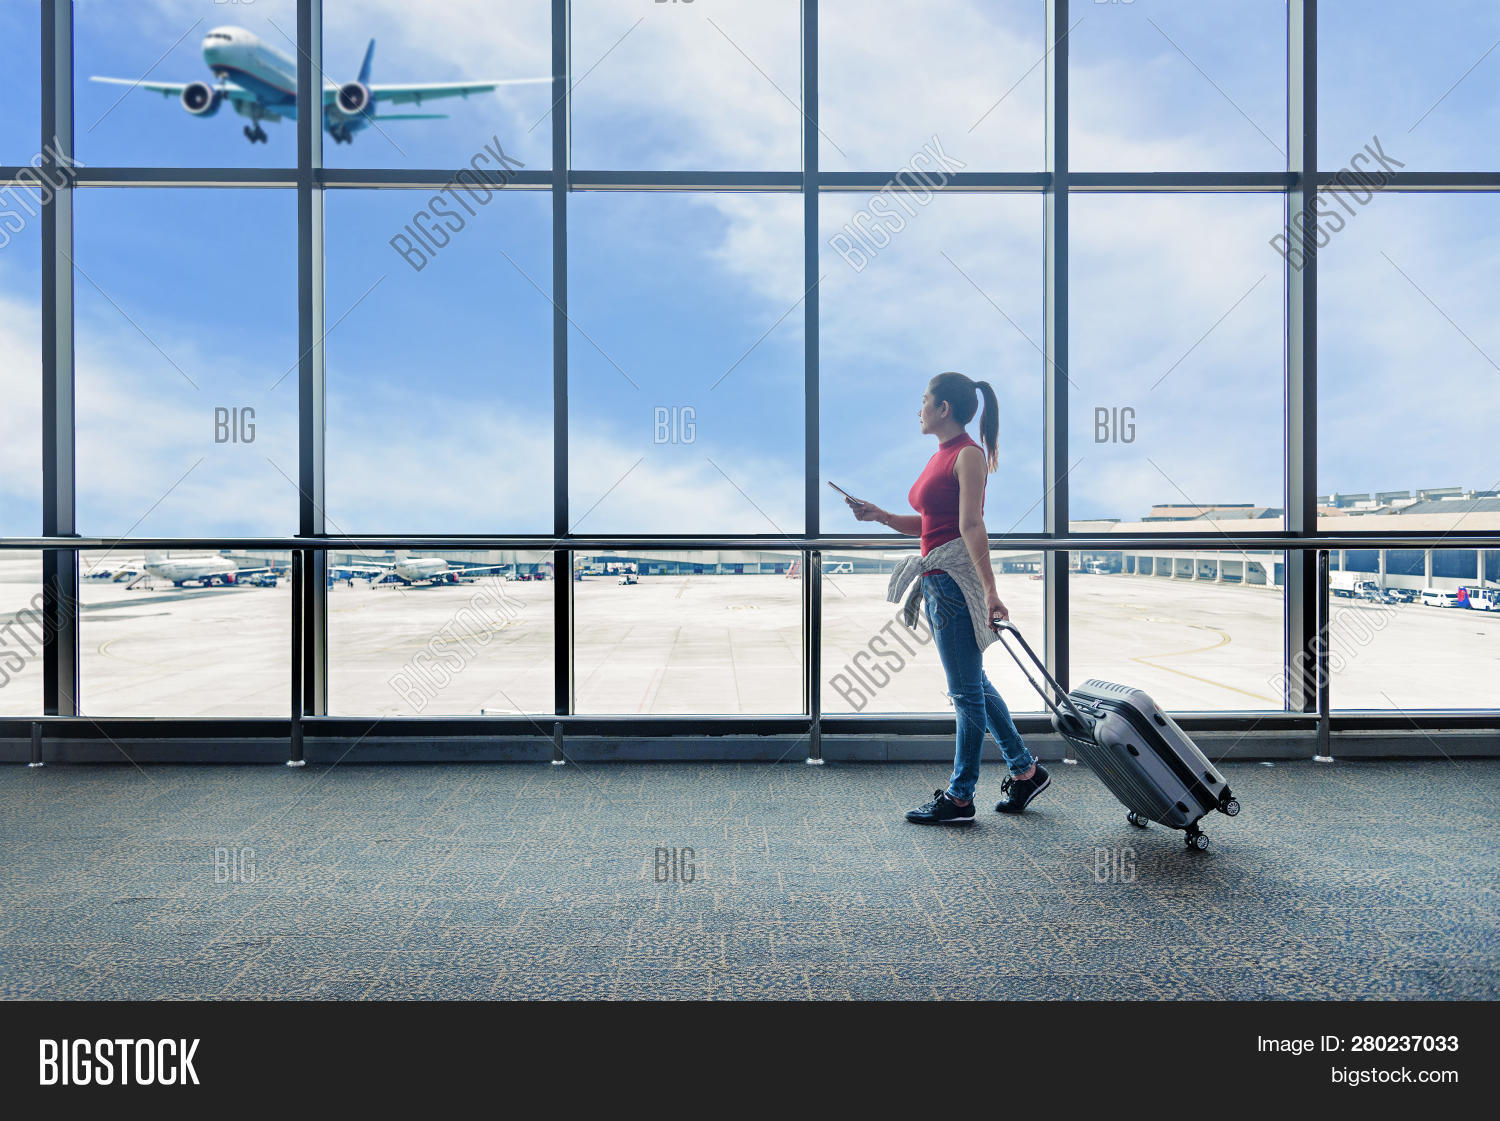 abstract,aircraft,airplane,airport,architecture,background,backpack,backpacker,bag,board,building,business,city,concept,departure,design,flight,girl,glass,hall,happy,holiday,lifestyle,lounge,luggage,modern,office,pass,passport,patten,people,person,plane,reflection,sky,standing,terminal,tourism,tourist,transport,transportation,travel,traveler,vacations,view,wait,window,woman,young